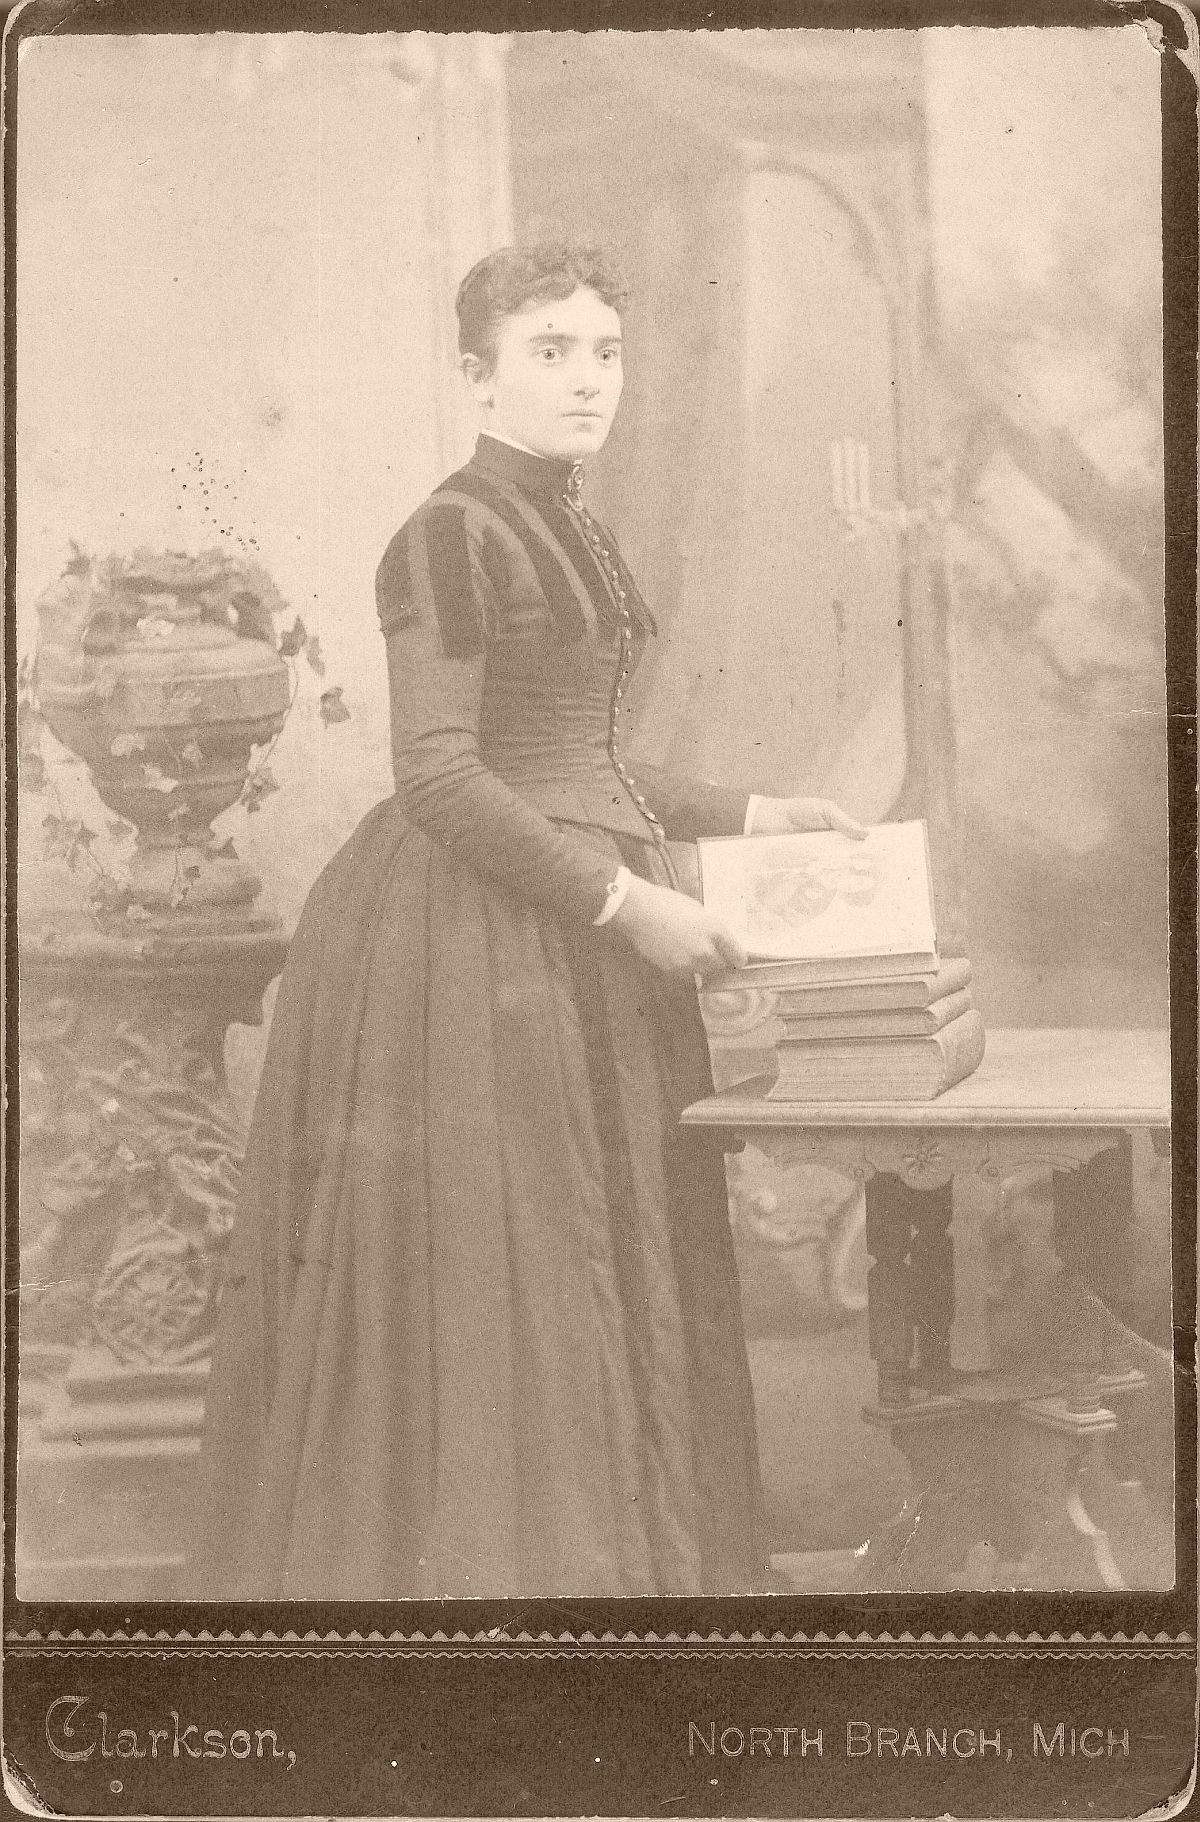 cabinet-cards-1870s-to-1880s-vintage-19th-century-victorian-era-15